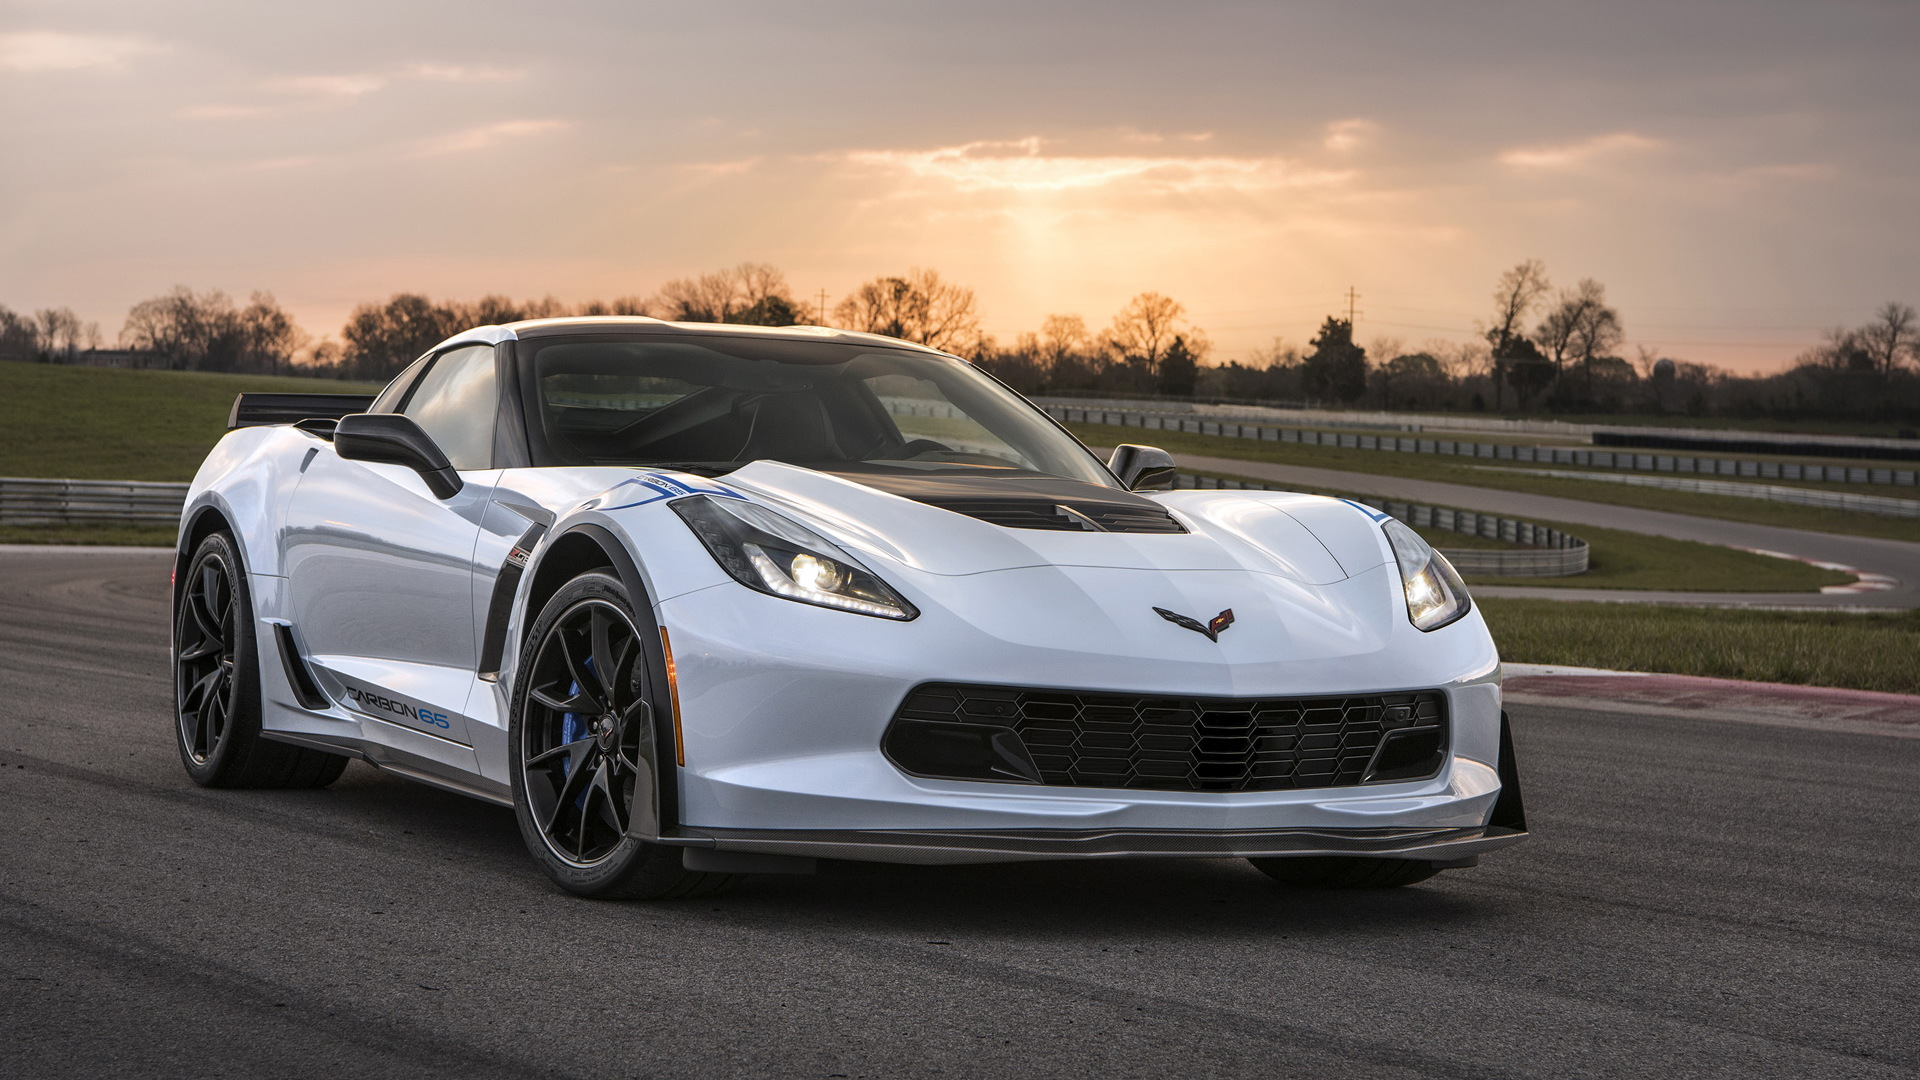 2018 Corvette Grand Sport >> 2018 Chevrolet Corvette Preview